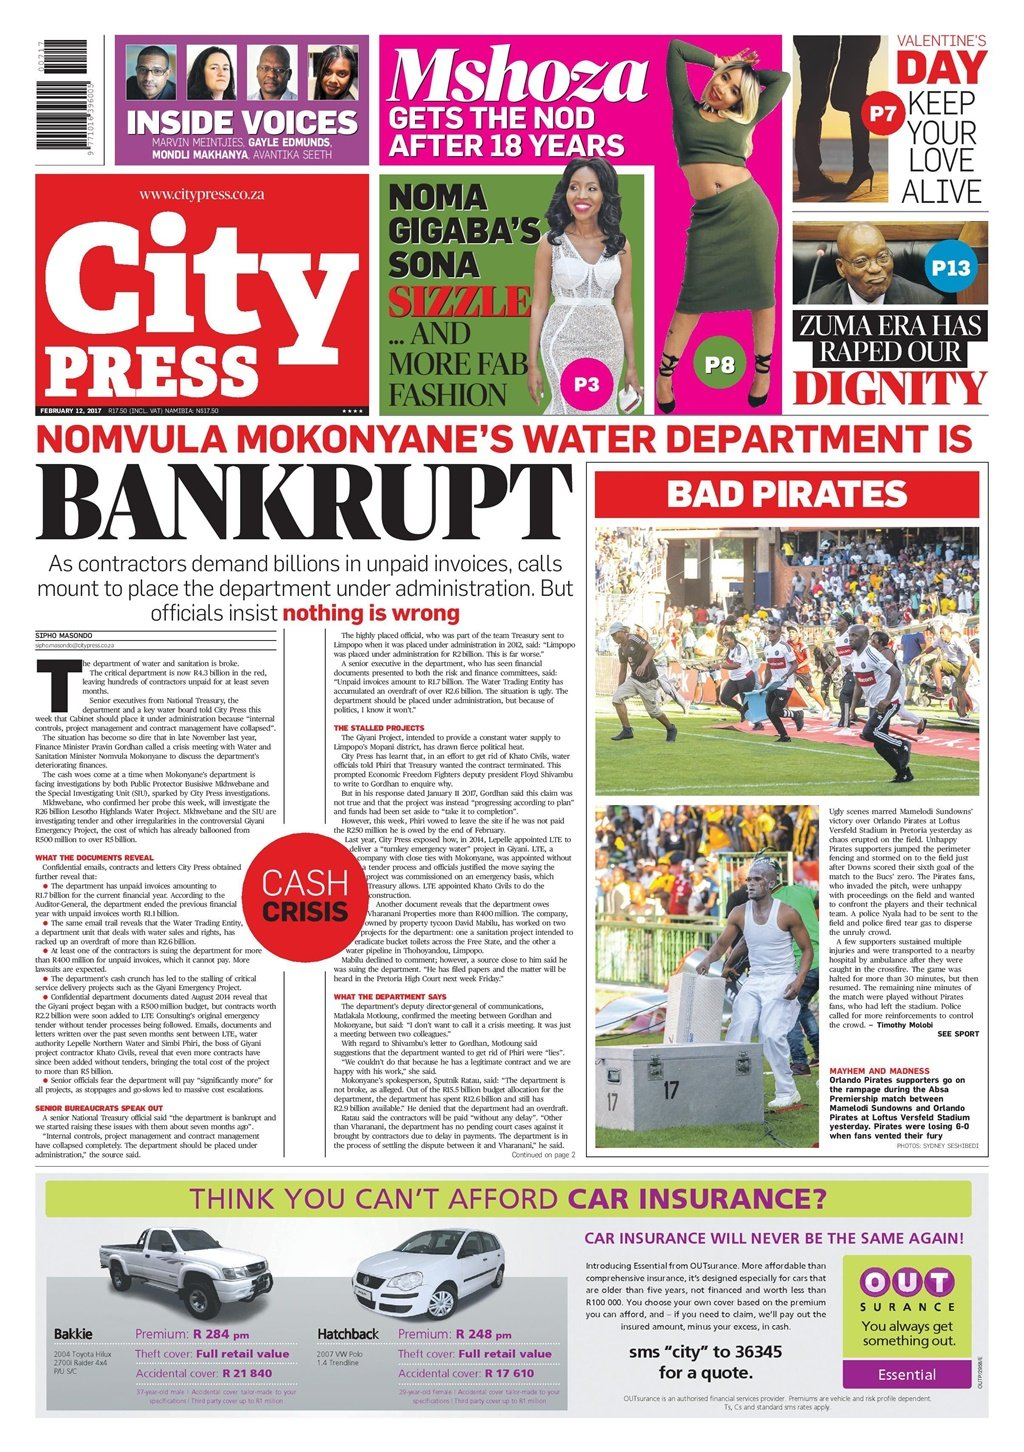 The City Press front page of February 12 2017